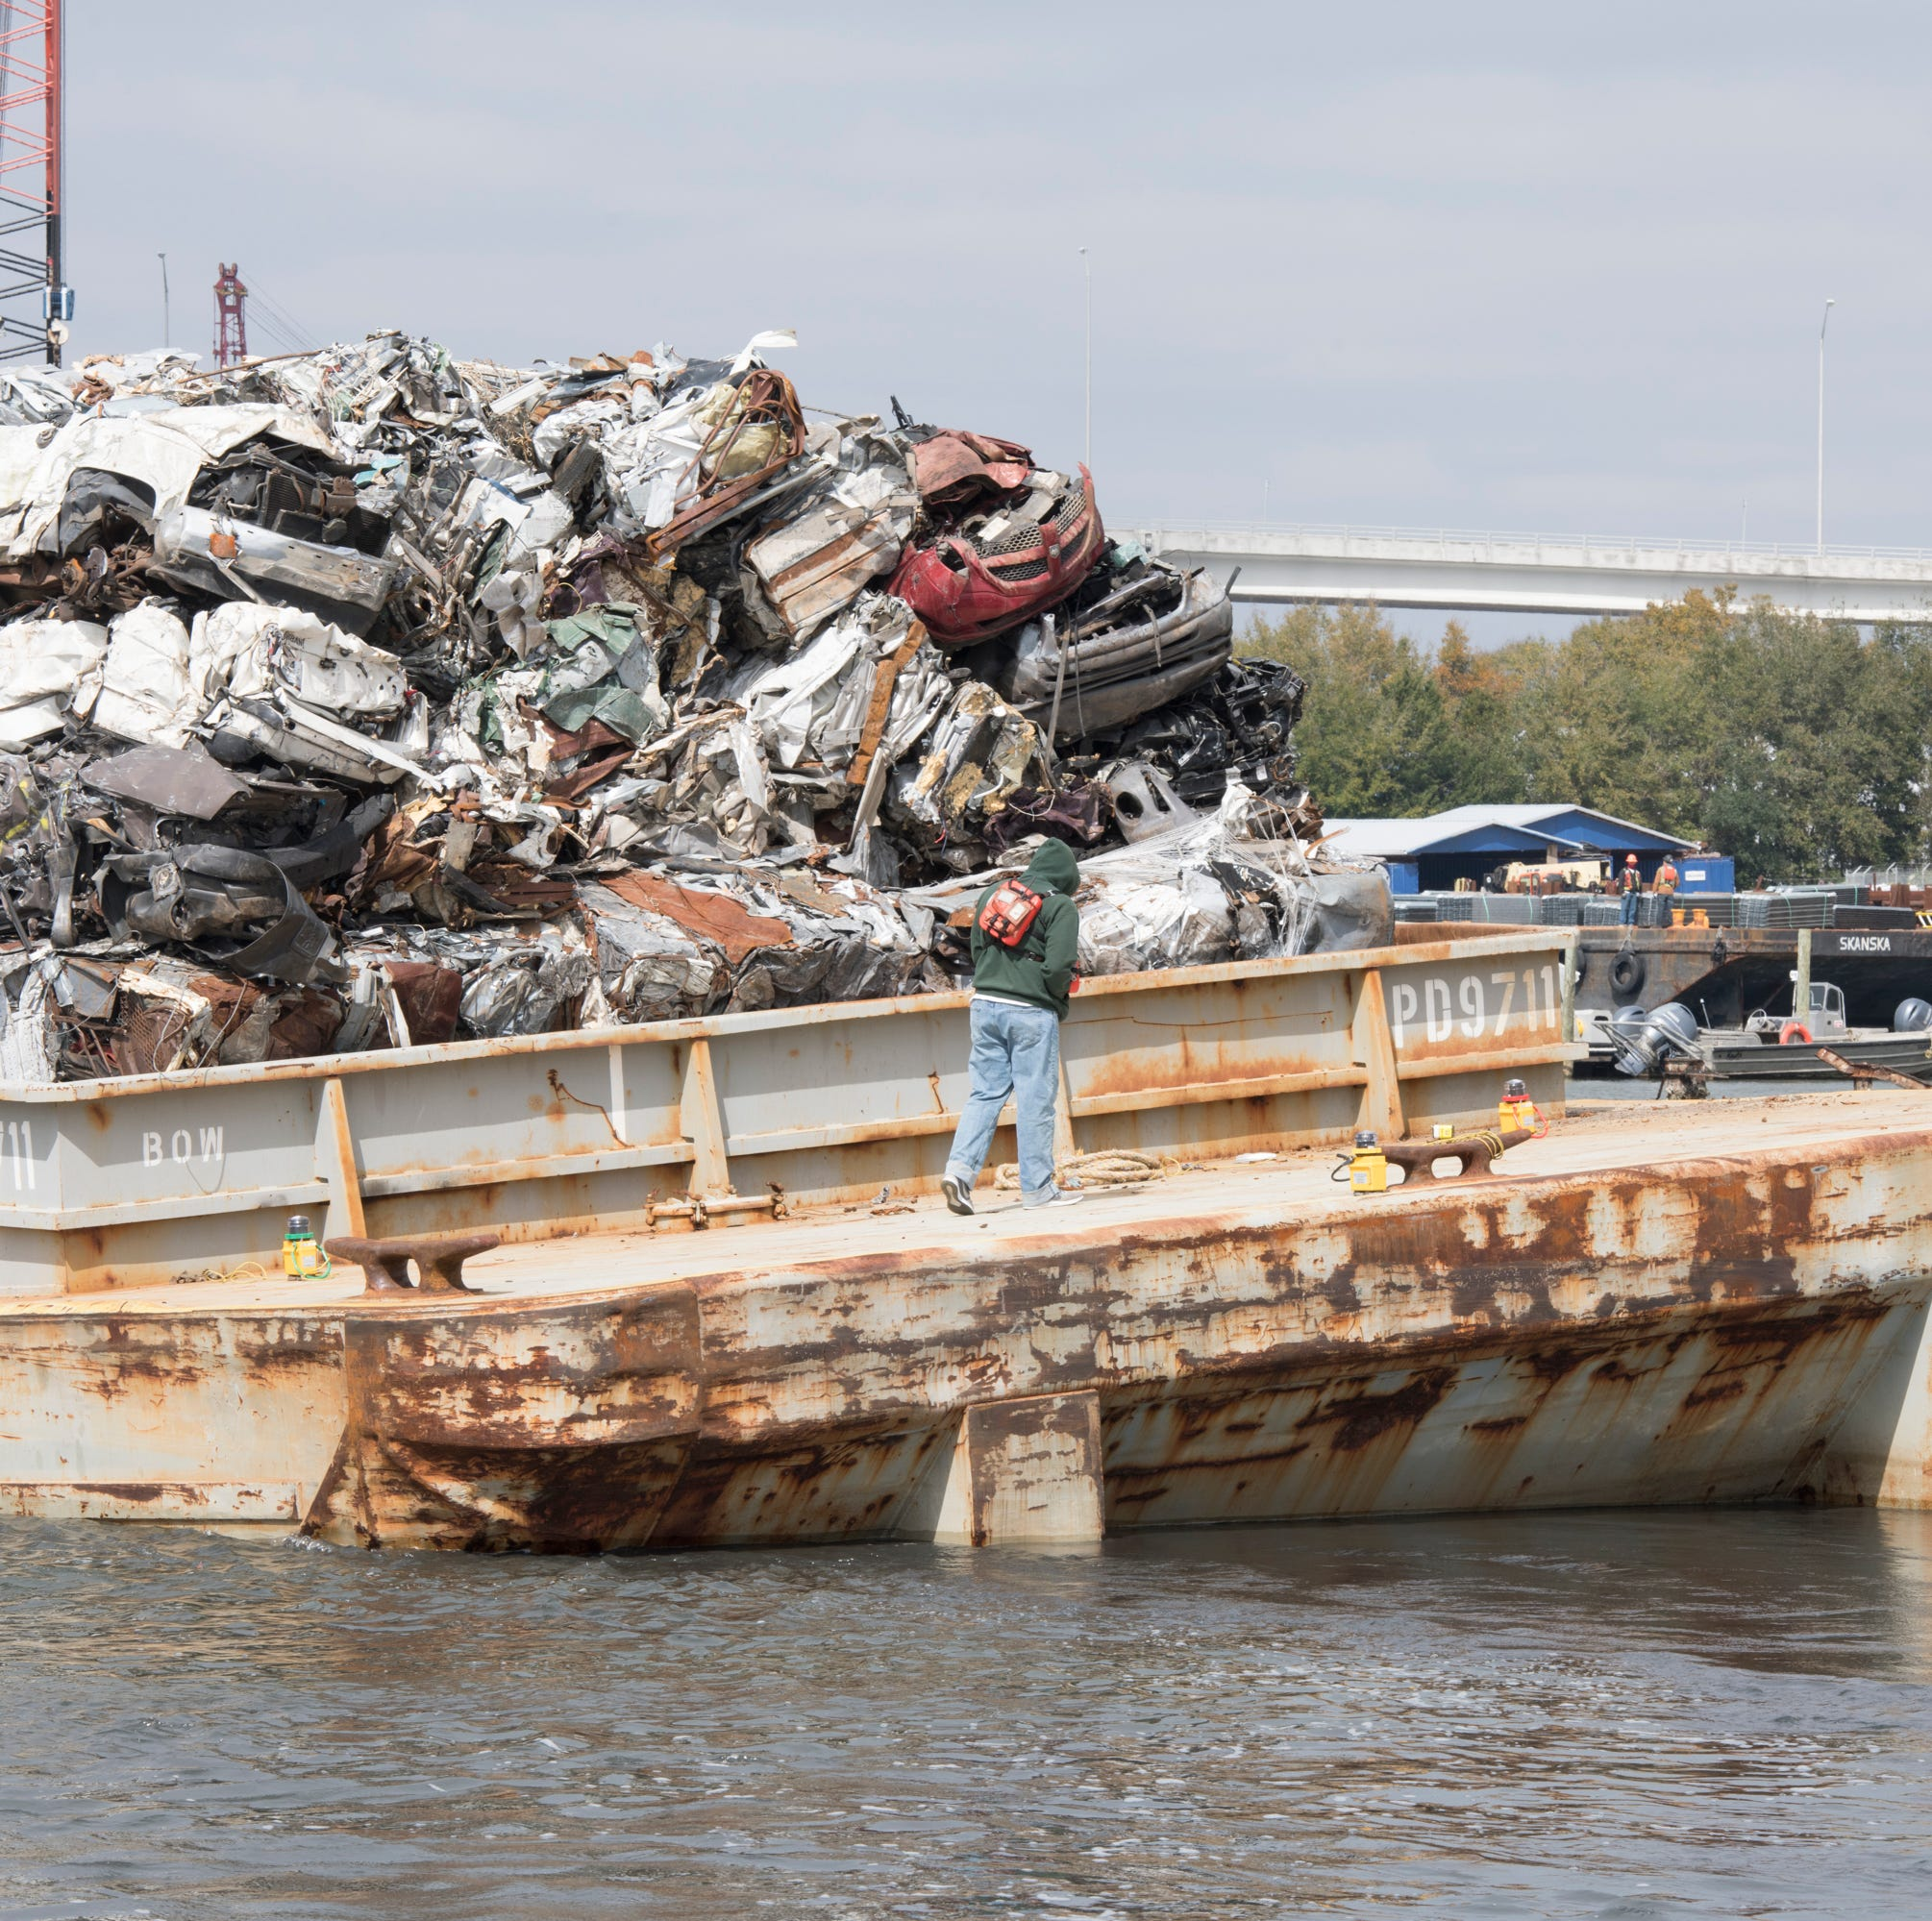 Barges carrying crushed cars run aground in Bayou Chico, separate from tug boat